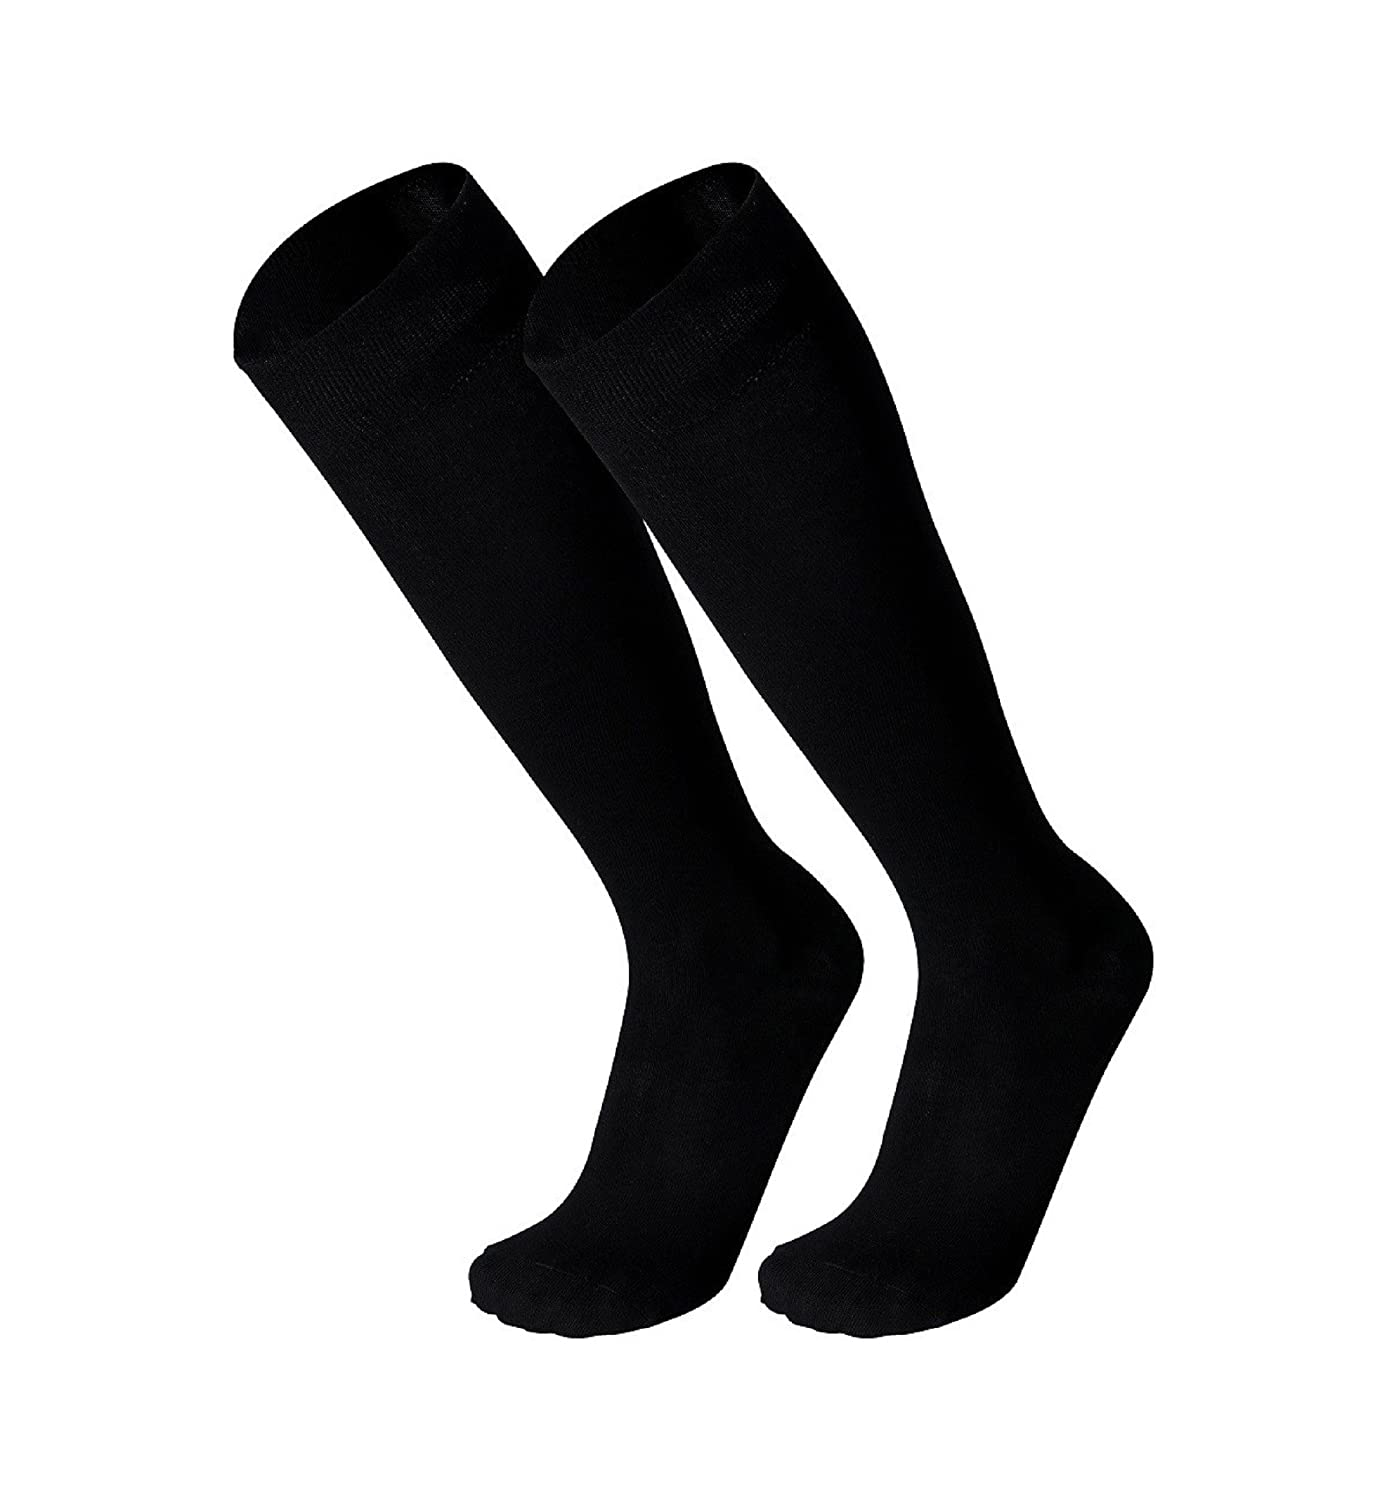 8d747ed3138 Tobeni 3 Pairs of Bamboo Knee-High Socks Antibacterial without Rubber for  Women and Men  Amazon.co.uk  Clothing